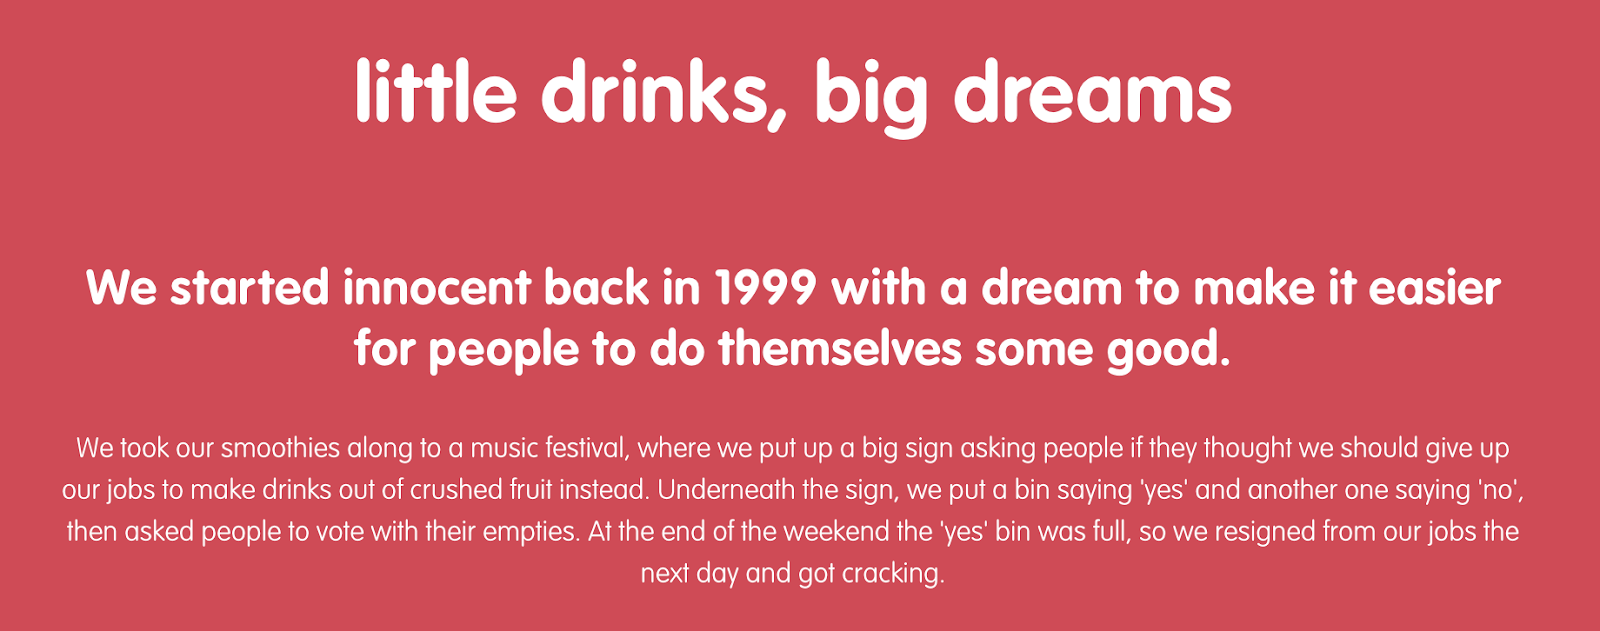 Innocent smoothies background story. Learn copywriting from their conversational tone.